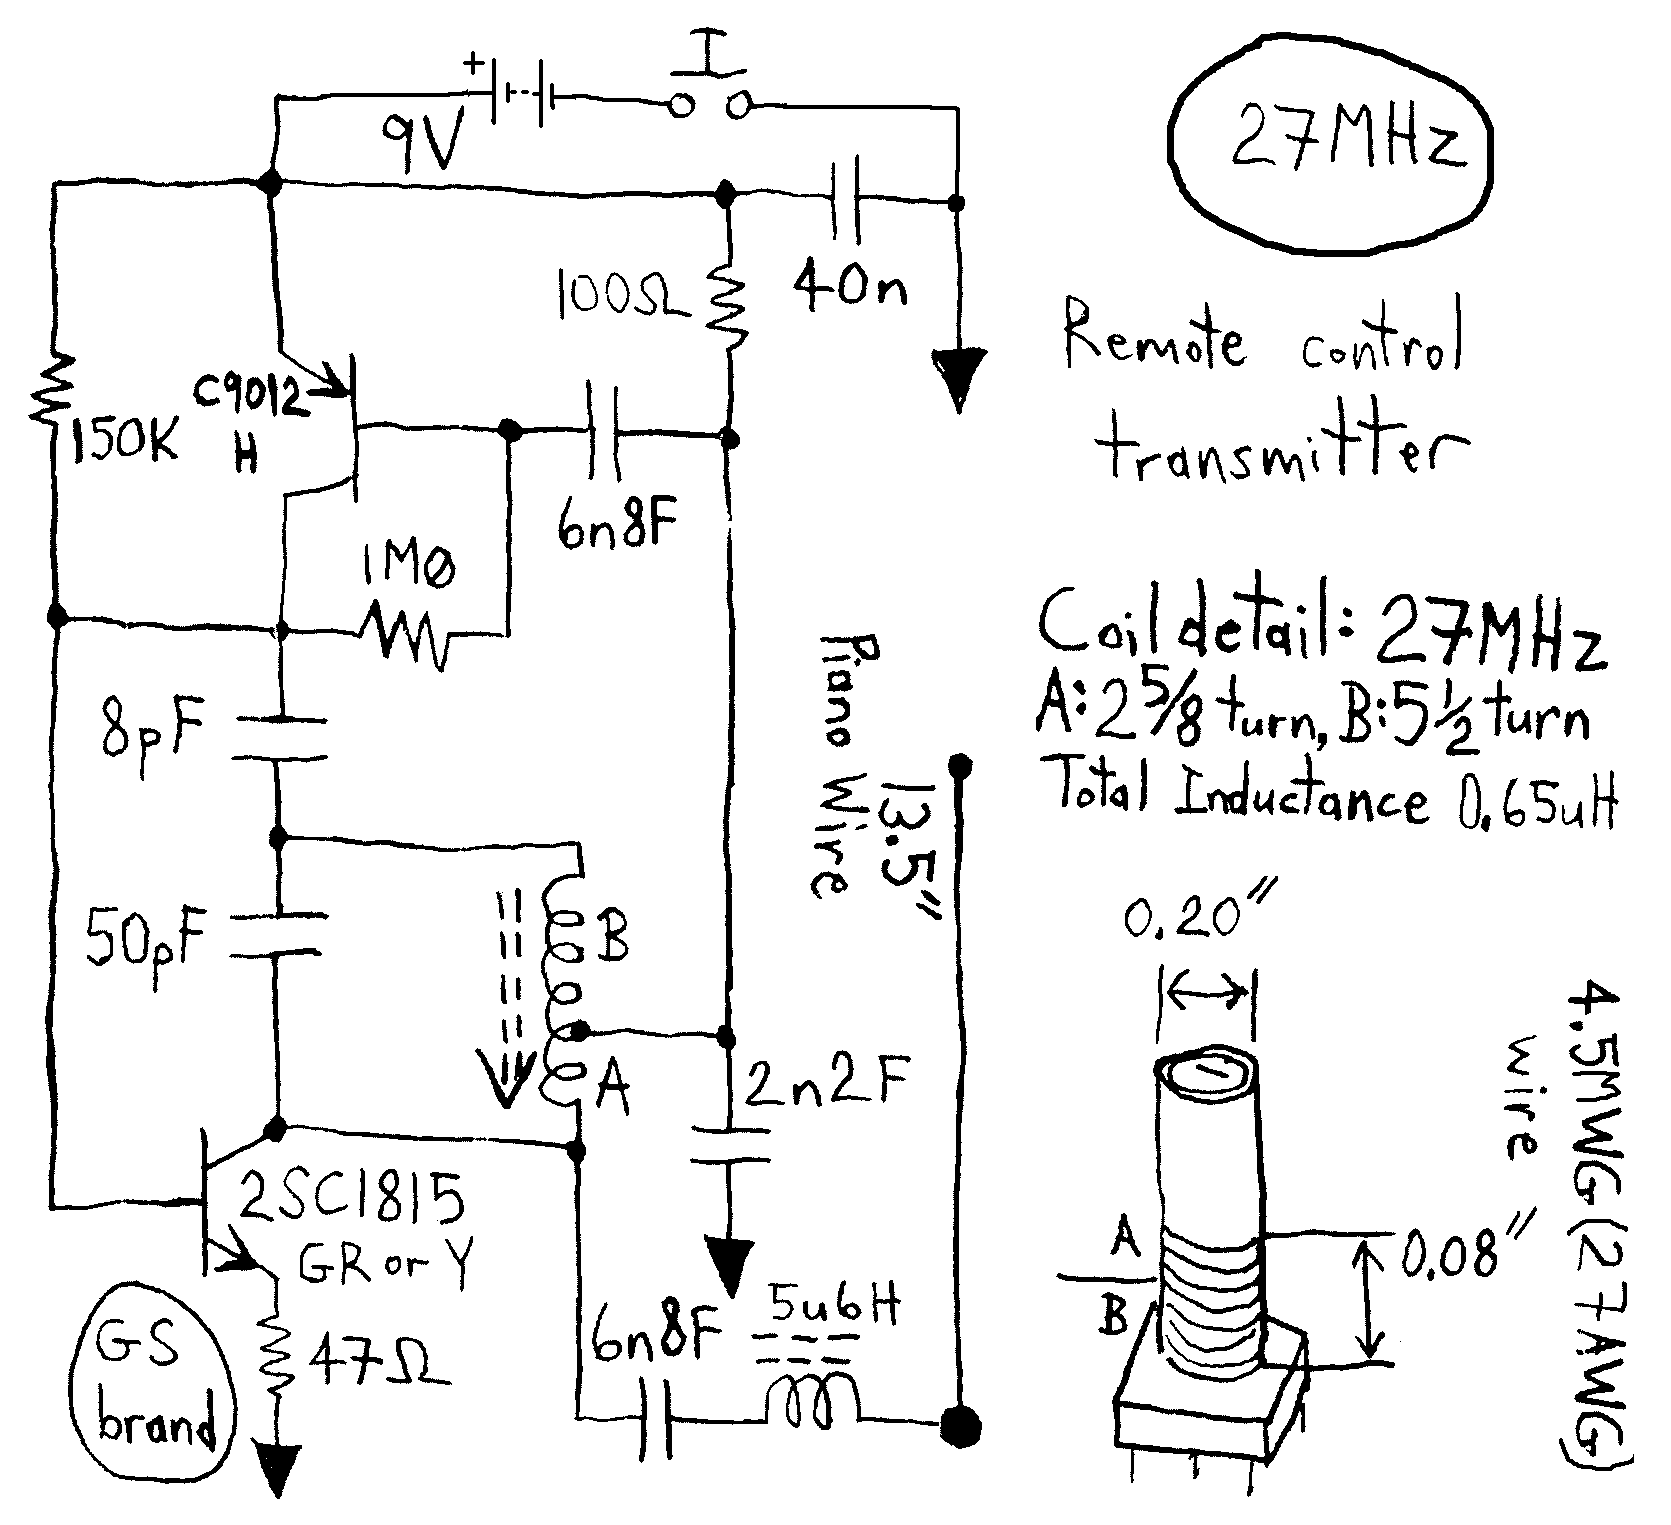 Remote Control Circuit Page 2 Automation Circuits Next Gr Auto Using Kt3170 Also Dc Motor Brake U0026gt Rc Cars Simple L29776